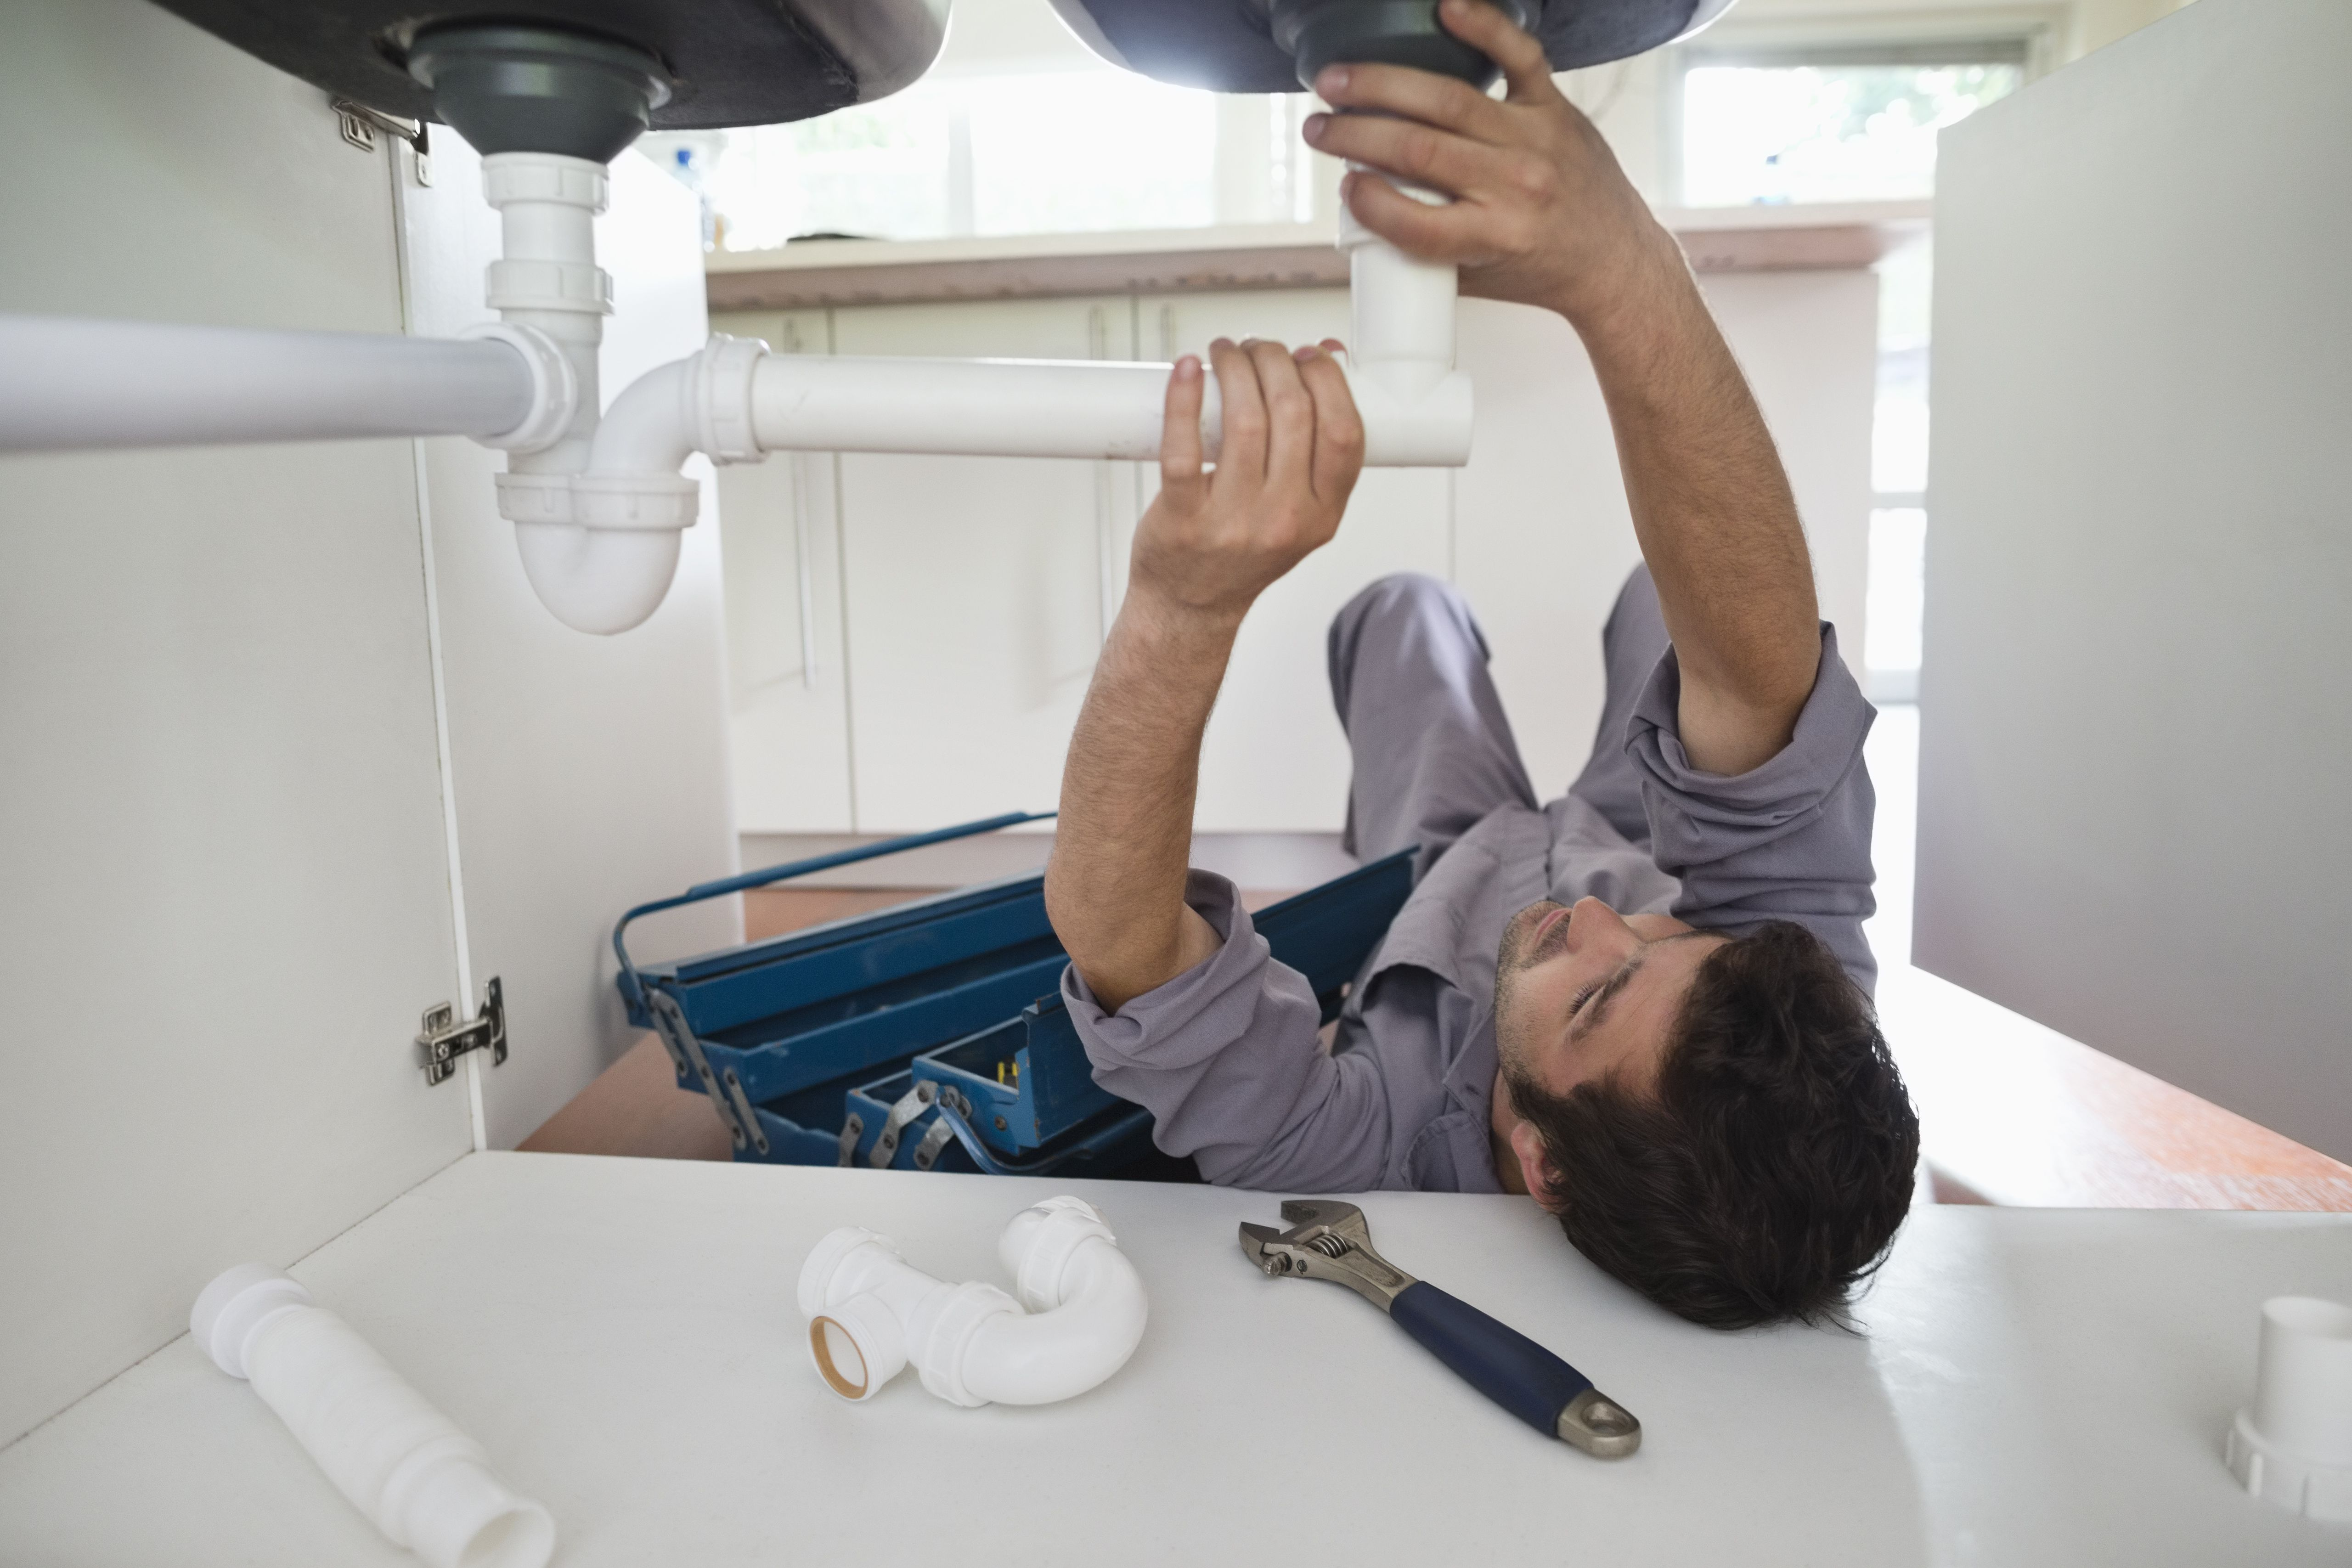 Plumber working on pipes under kitchen sink.